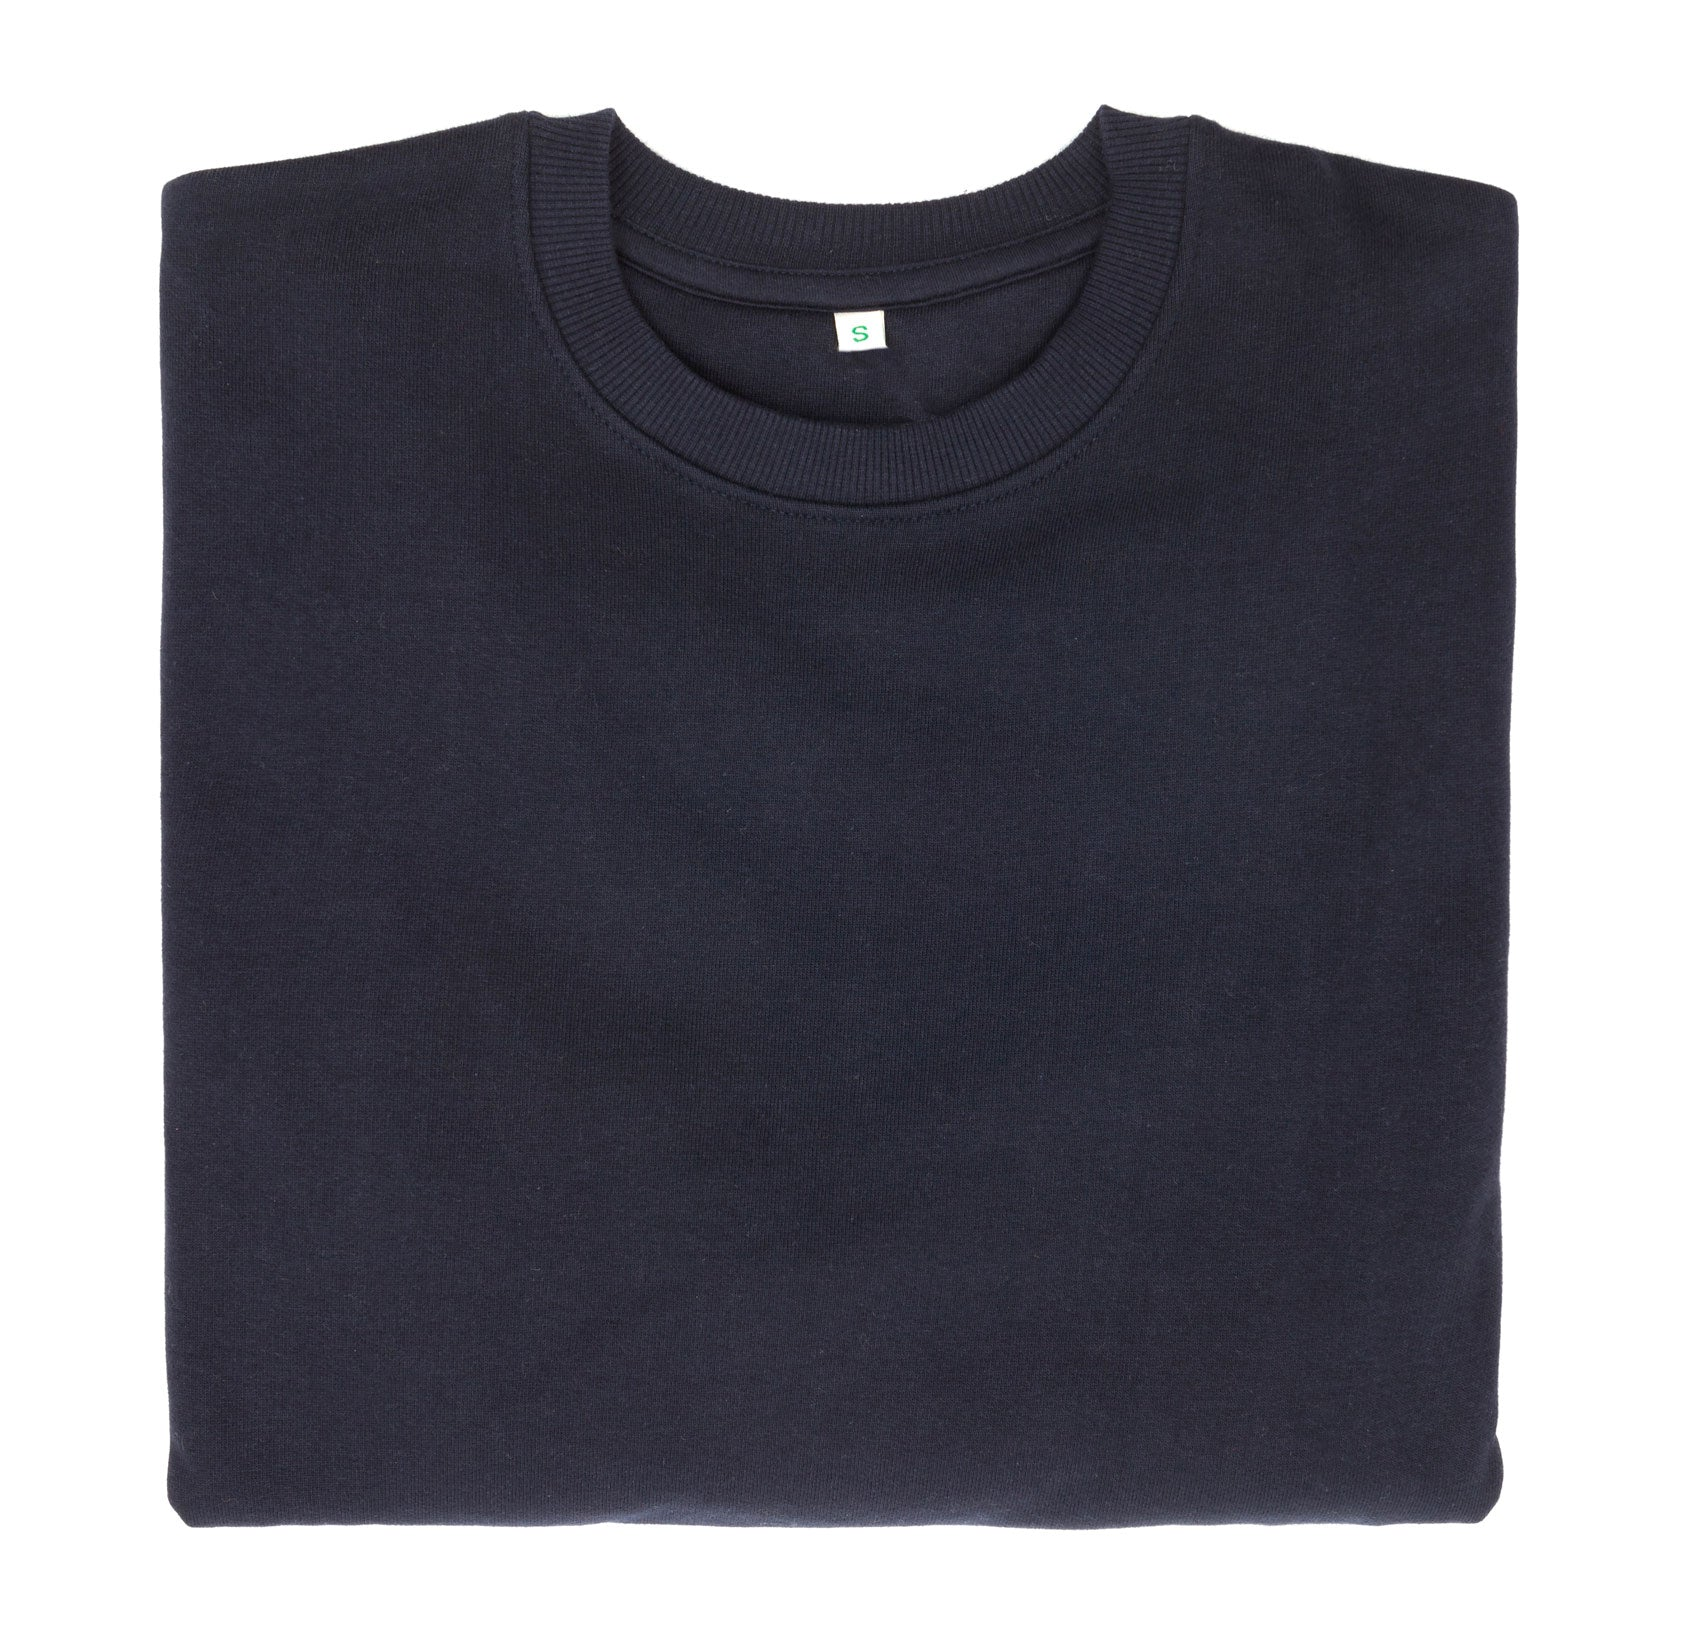 Eco-friendly organic cotton jumper made with carbon neutral footprint in navy